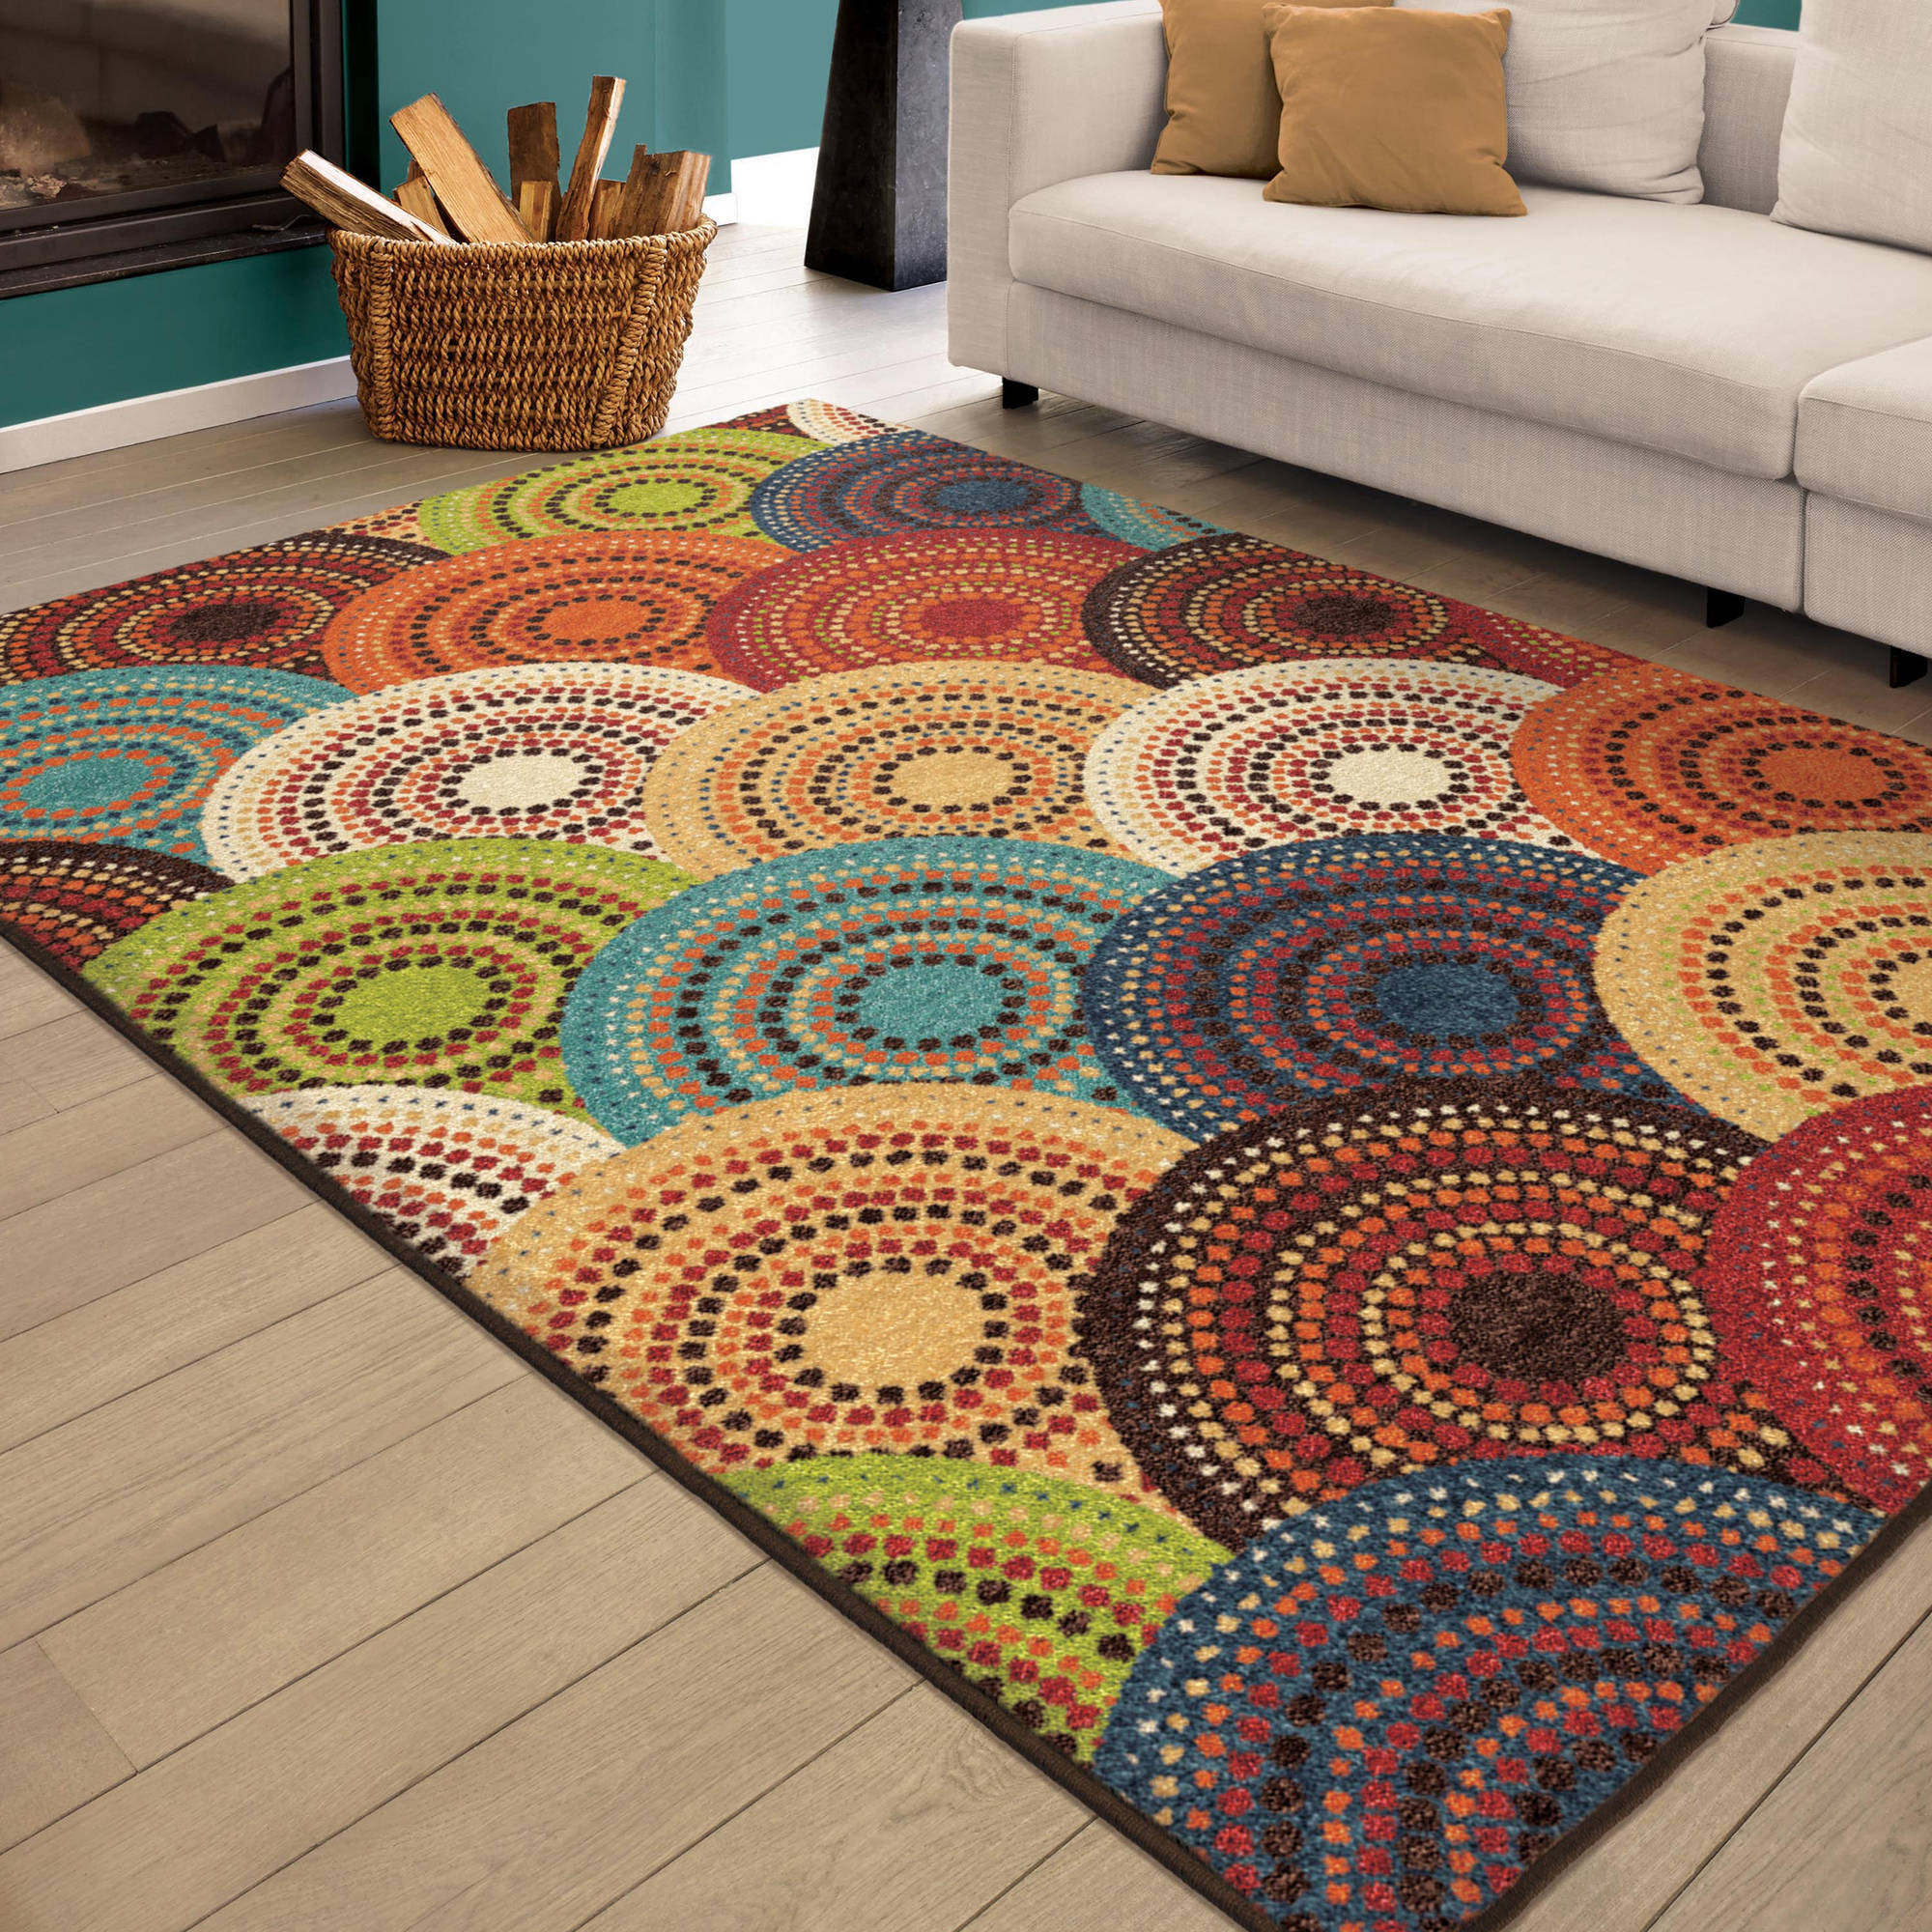 Better Homes and Gardens Medallion Indoor Outdoor Area Rug